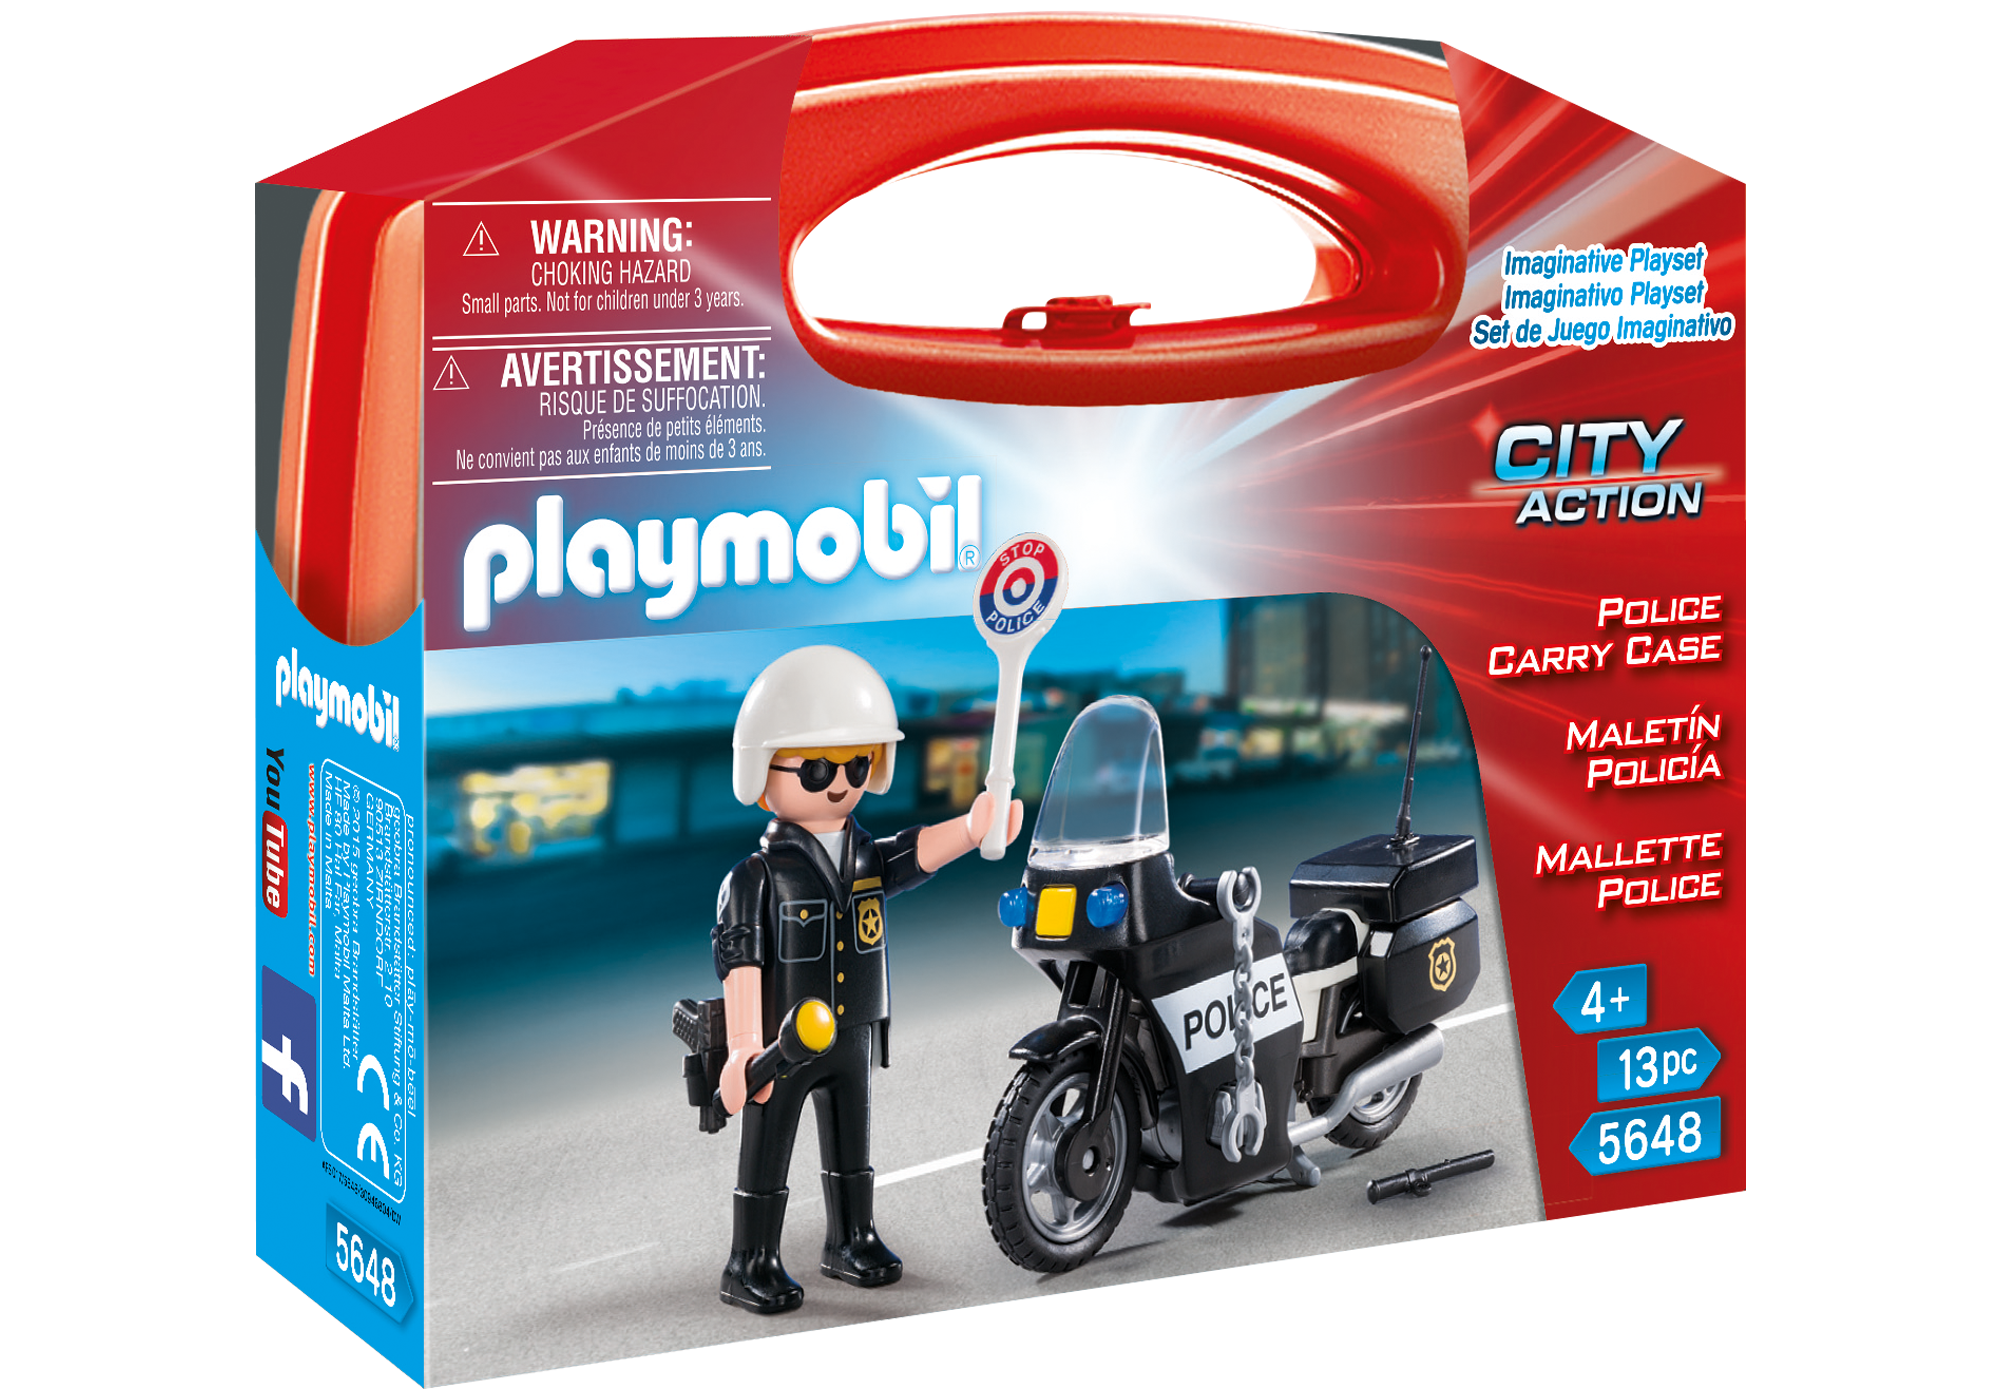 http://media.playmobil.com/i/playmobil/5648_product_box_front/Police Carry Case